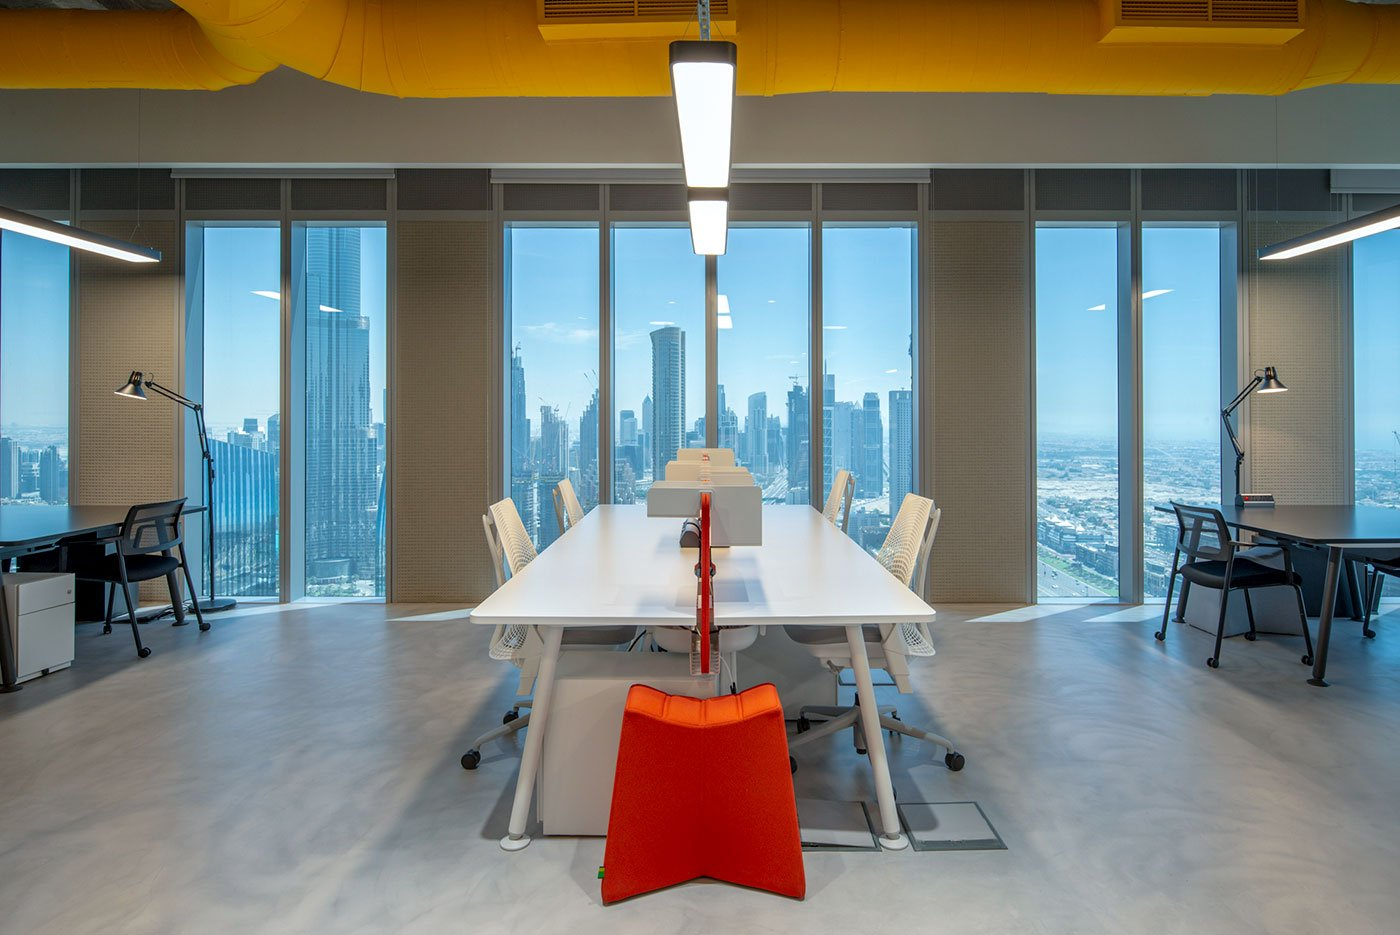 office interior photography